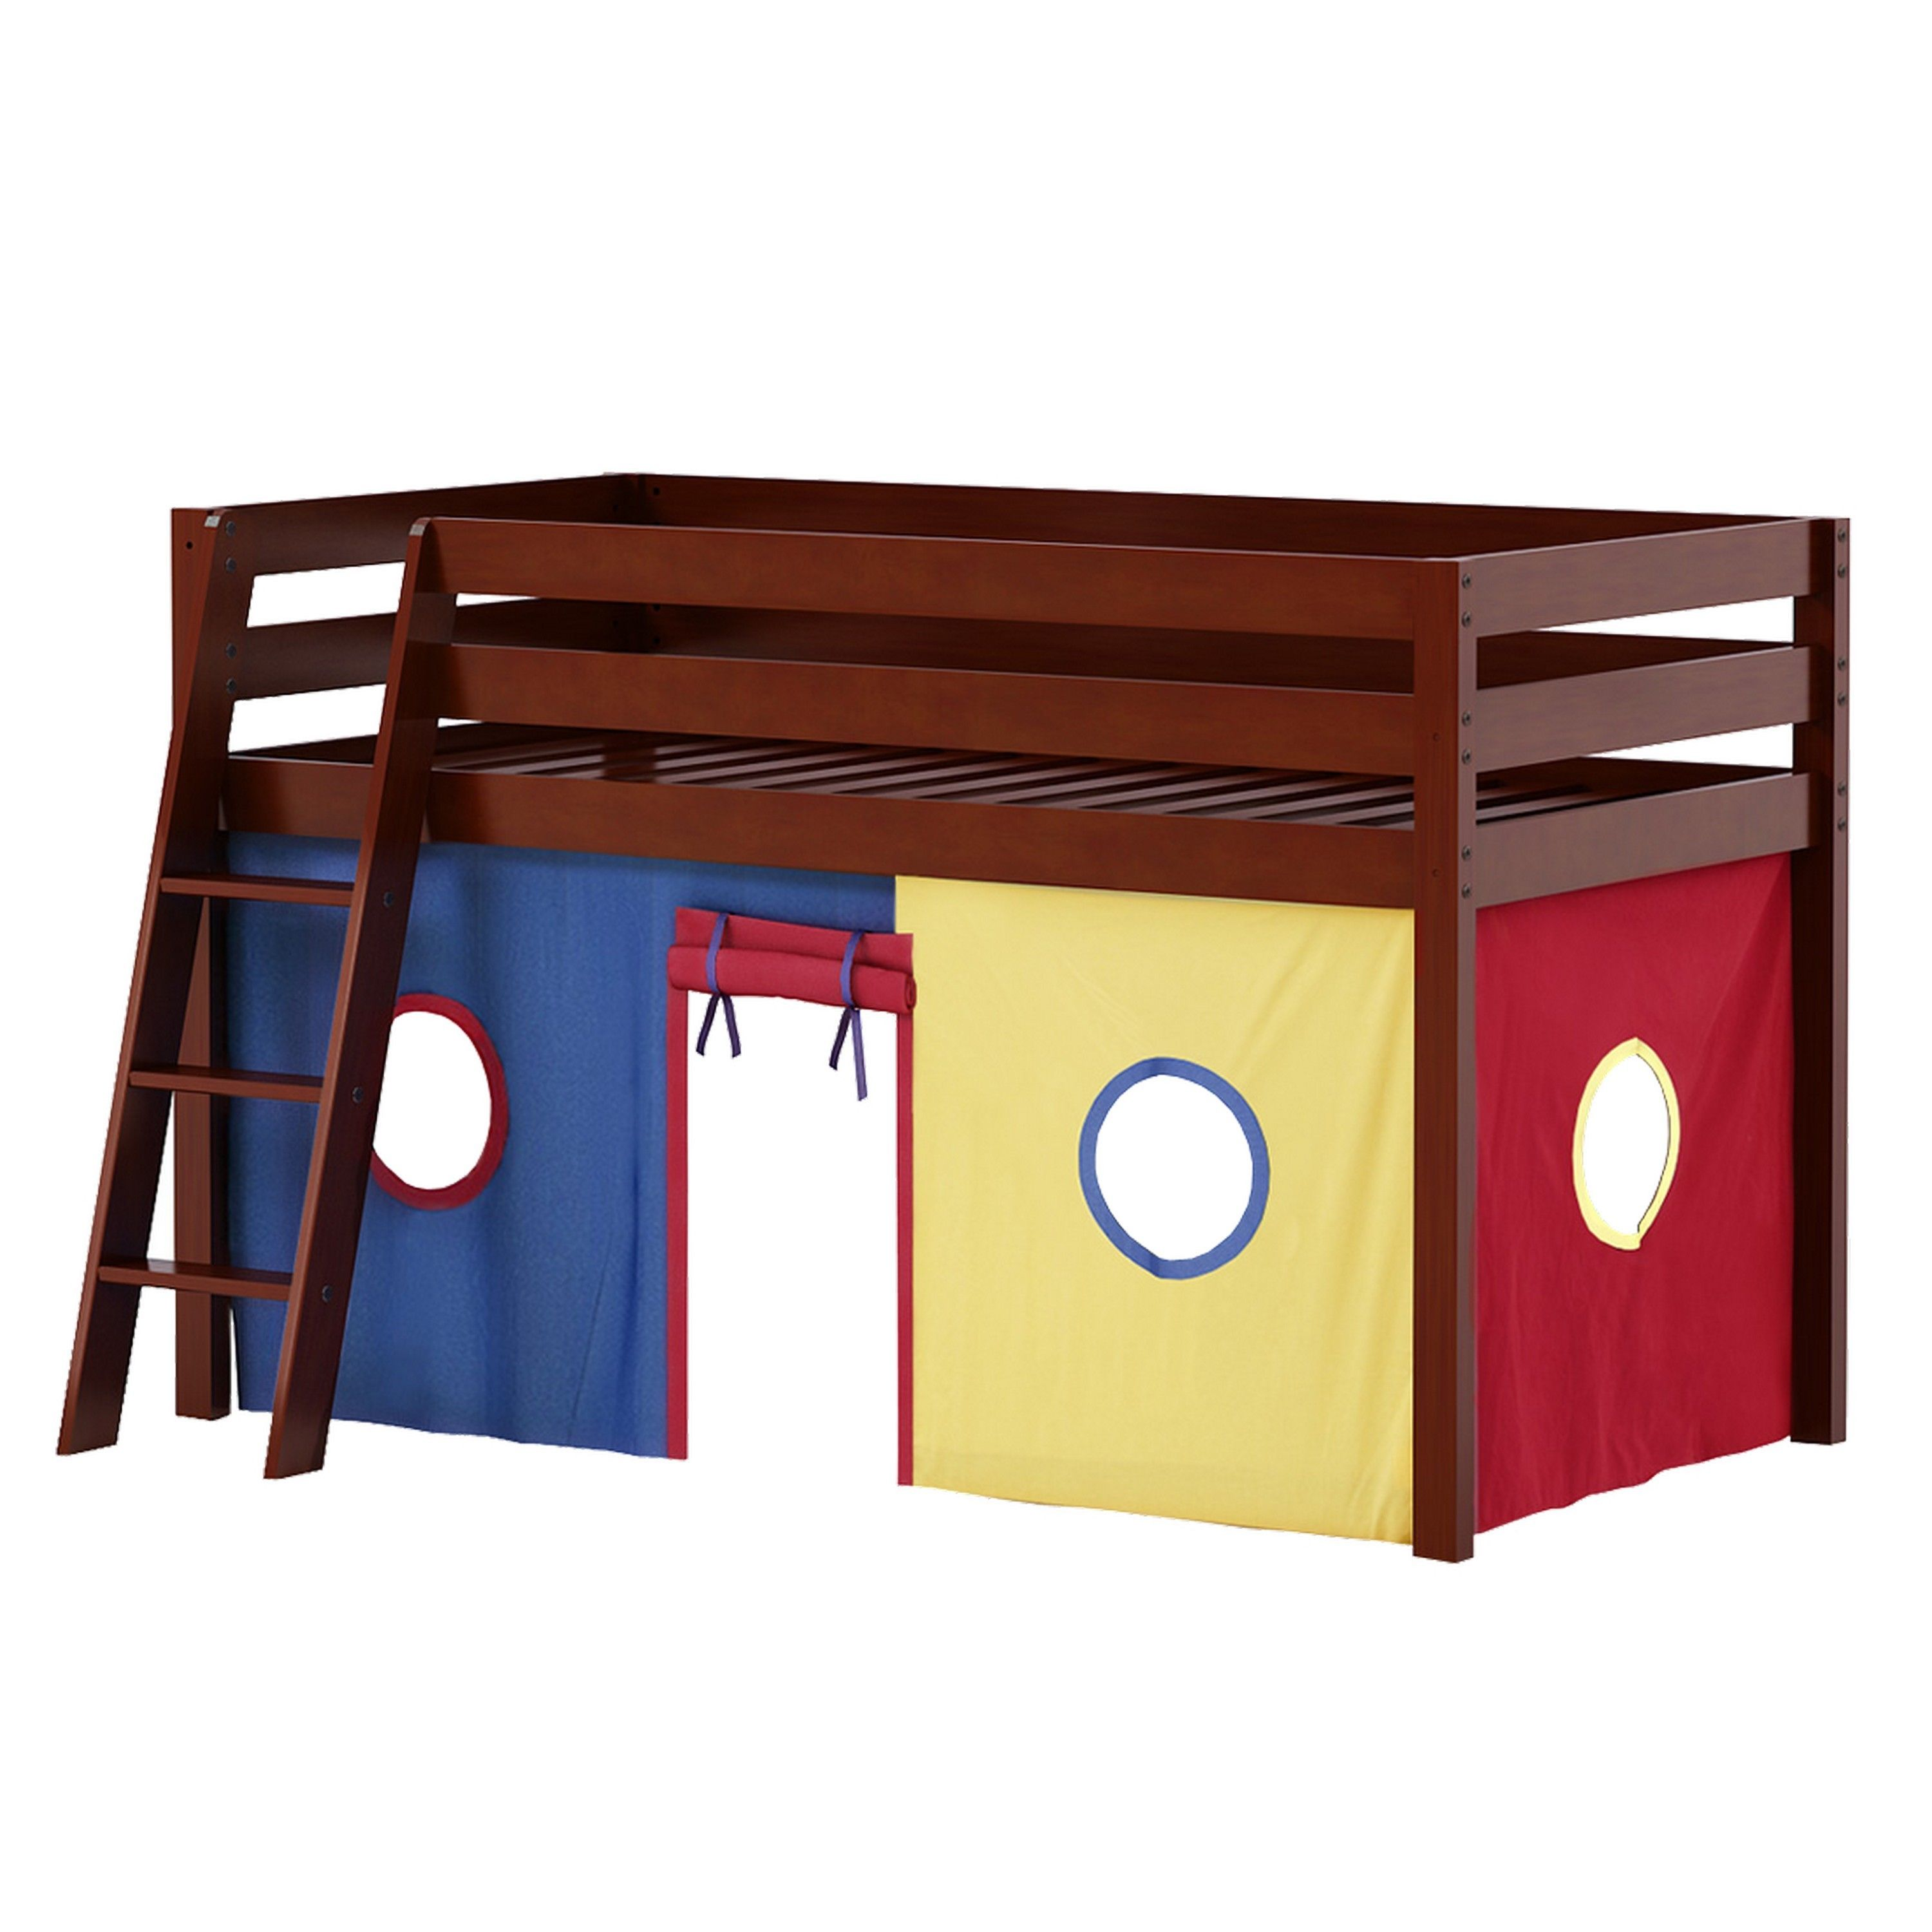 Kids low loft bed  JACKPOT Low Loft Bed with Angle Ladder and Underbed Curtain Cherry